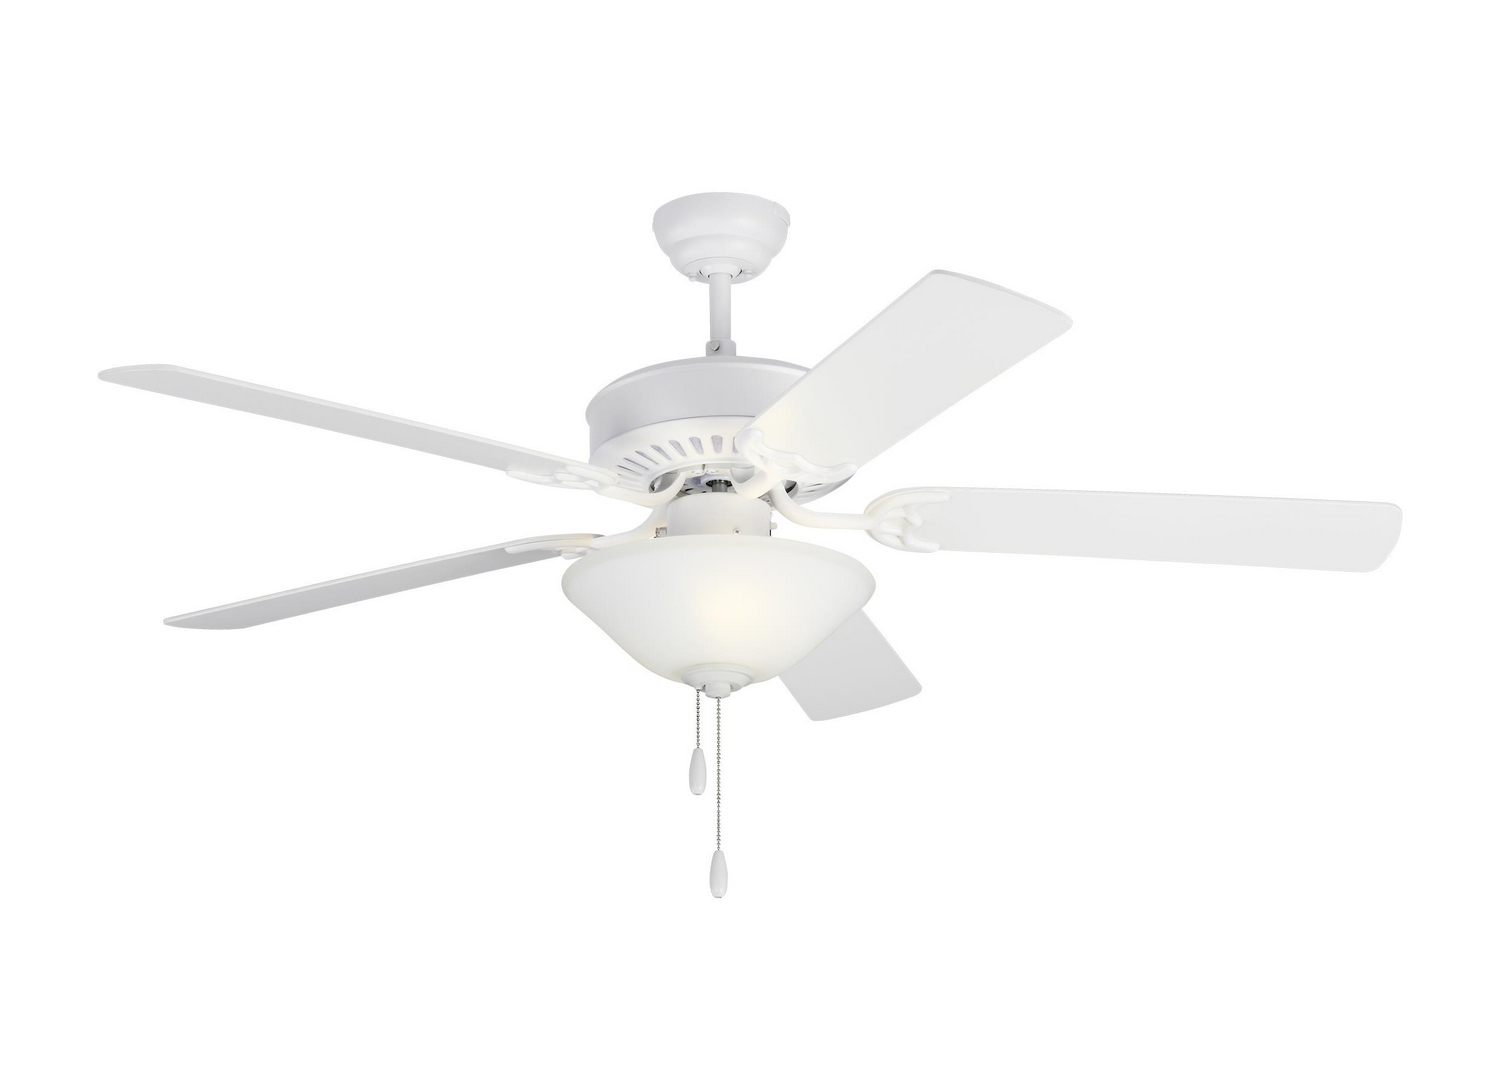 52 inchCeiling Fan from the Haven 52 LED 2 collection by Monte Carlo 5HV52RZWD